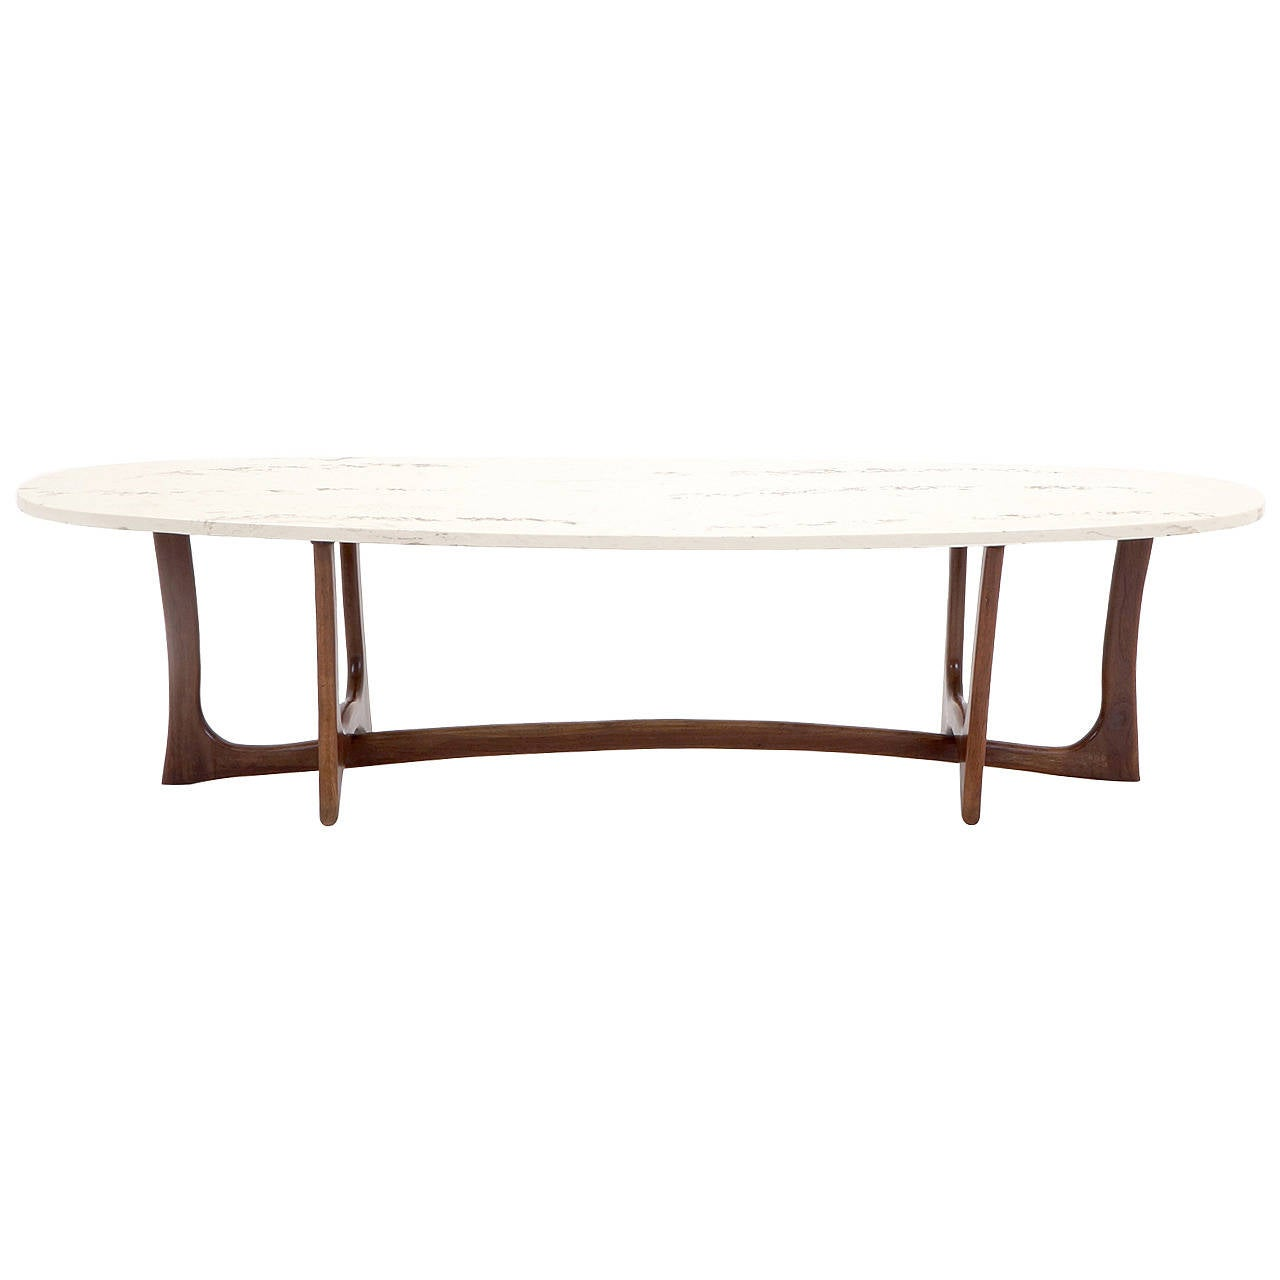 Original Adrian Pearsall For Craft Associates Coffee Table At 1stdibs